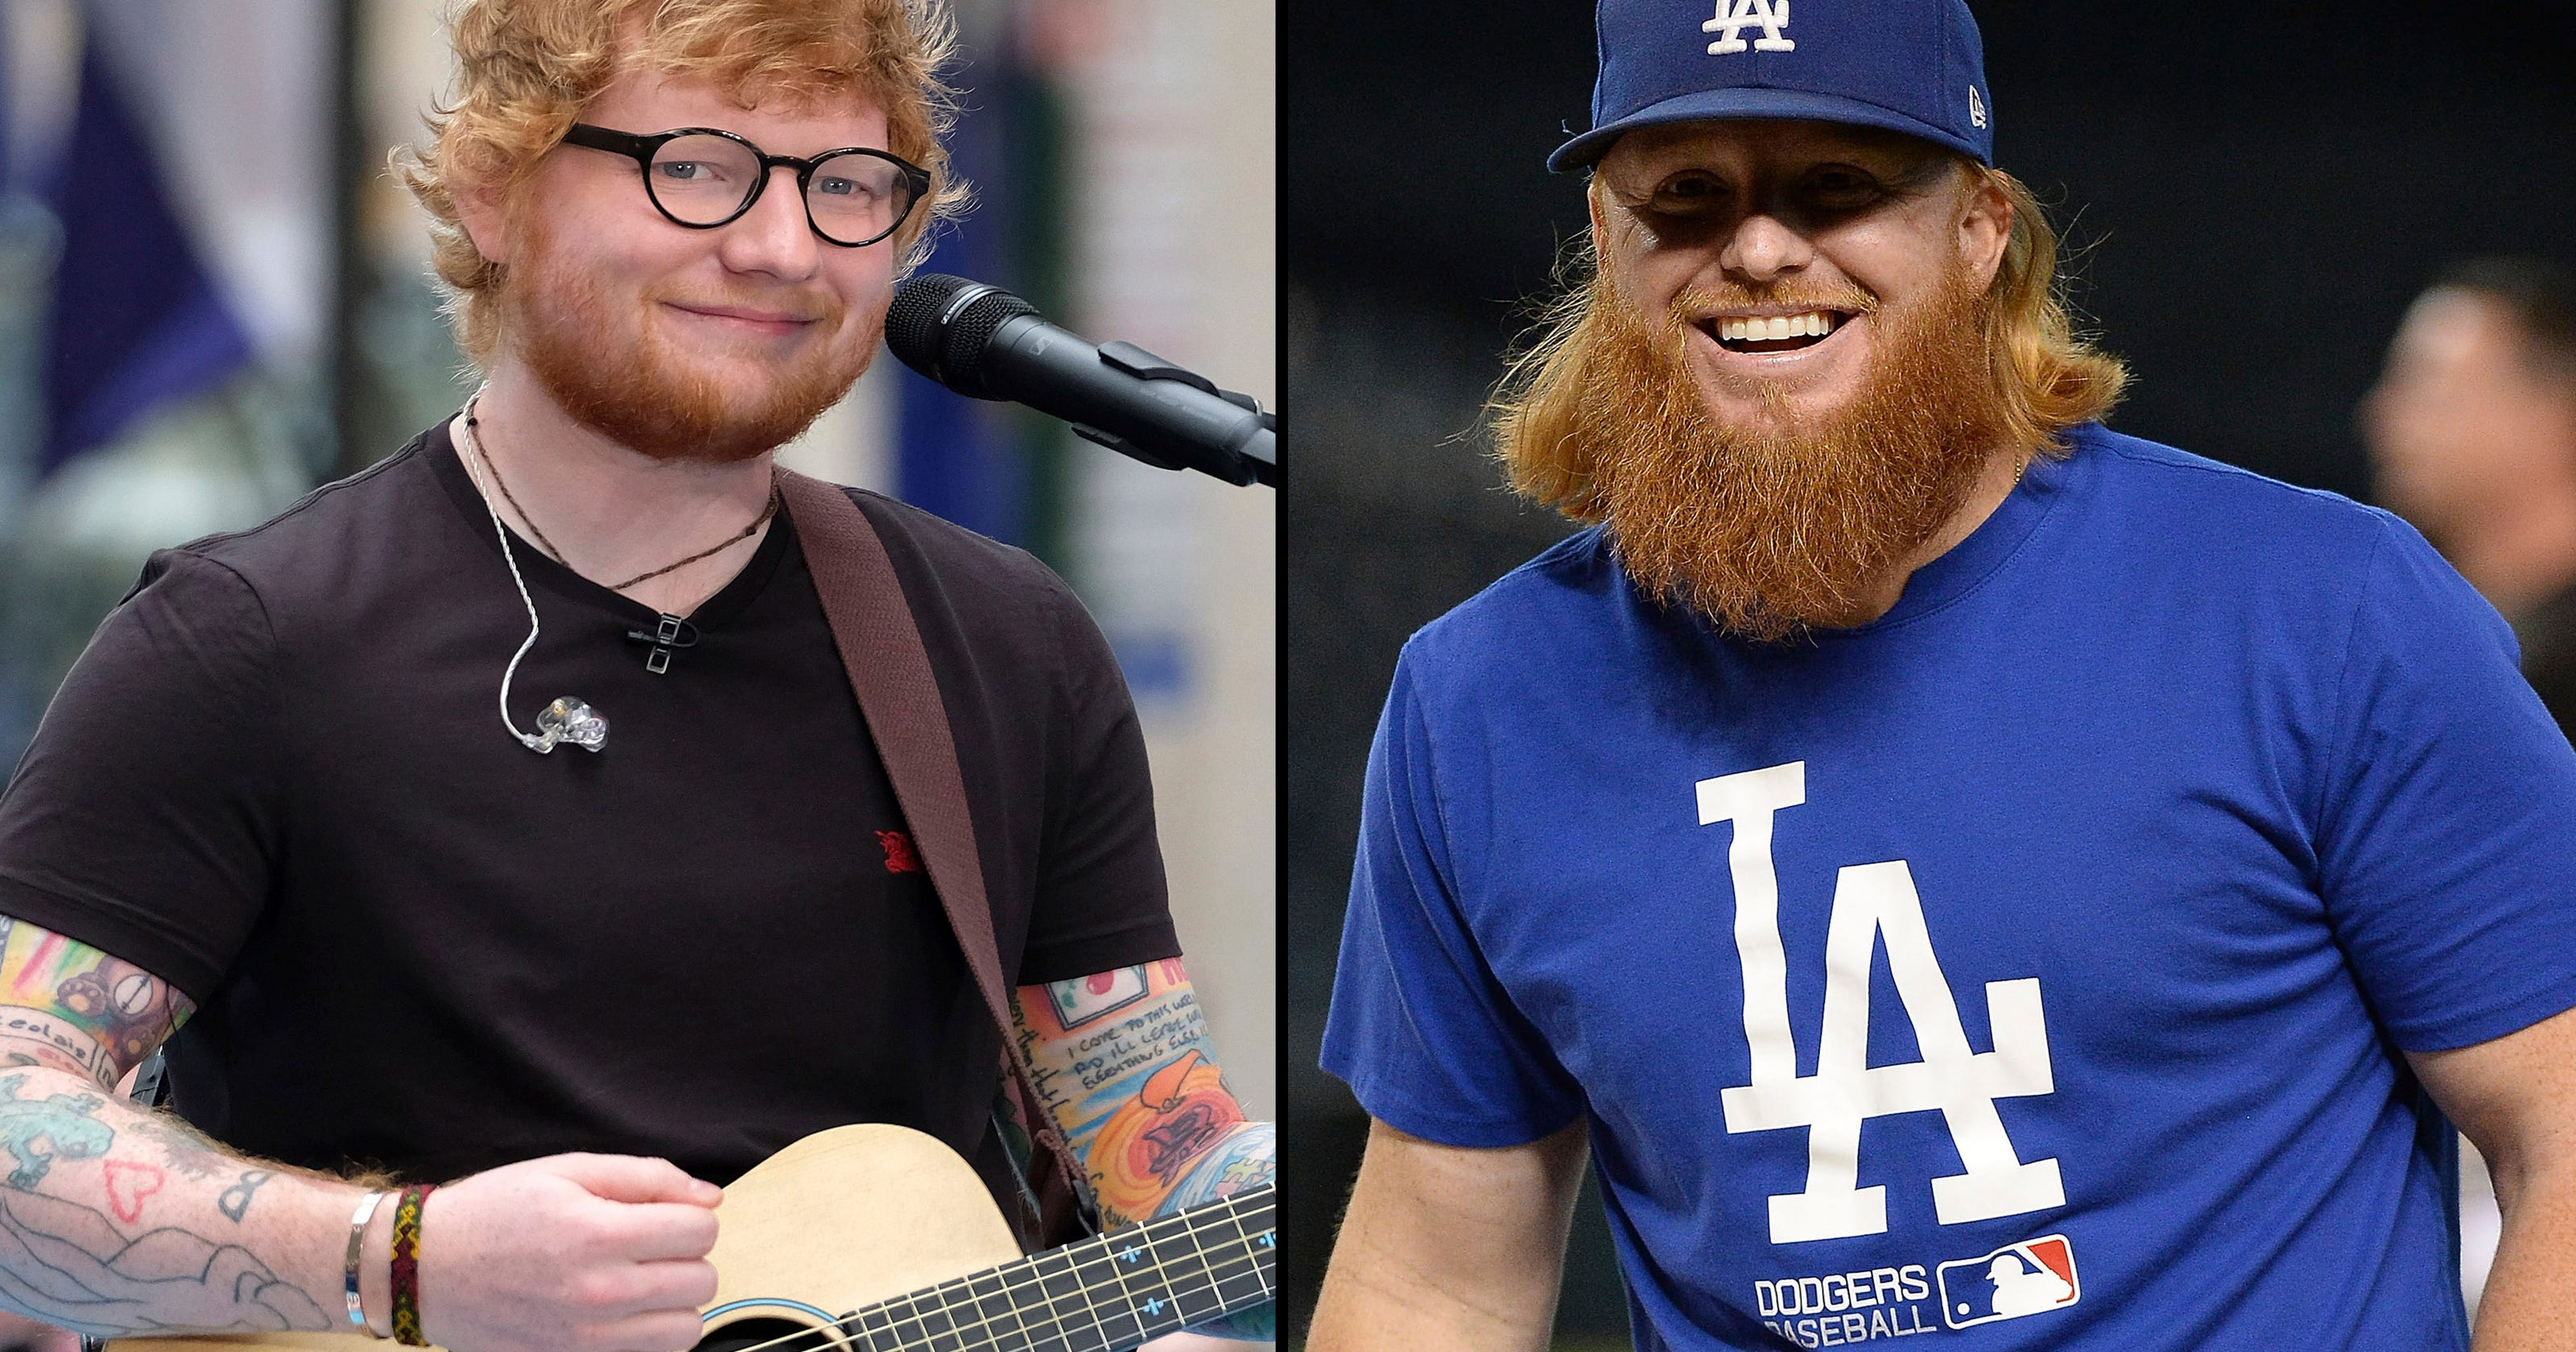 Justin Turner can t believe Ed Sheeran wore his jersey 2d32613c411